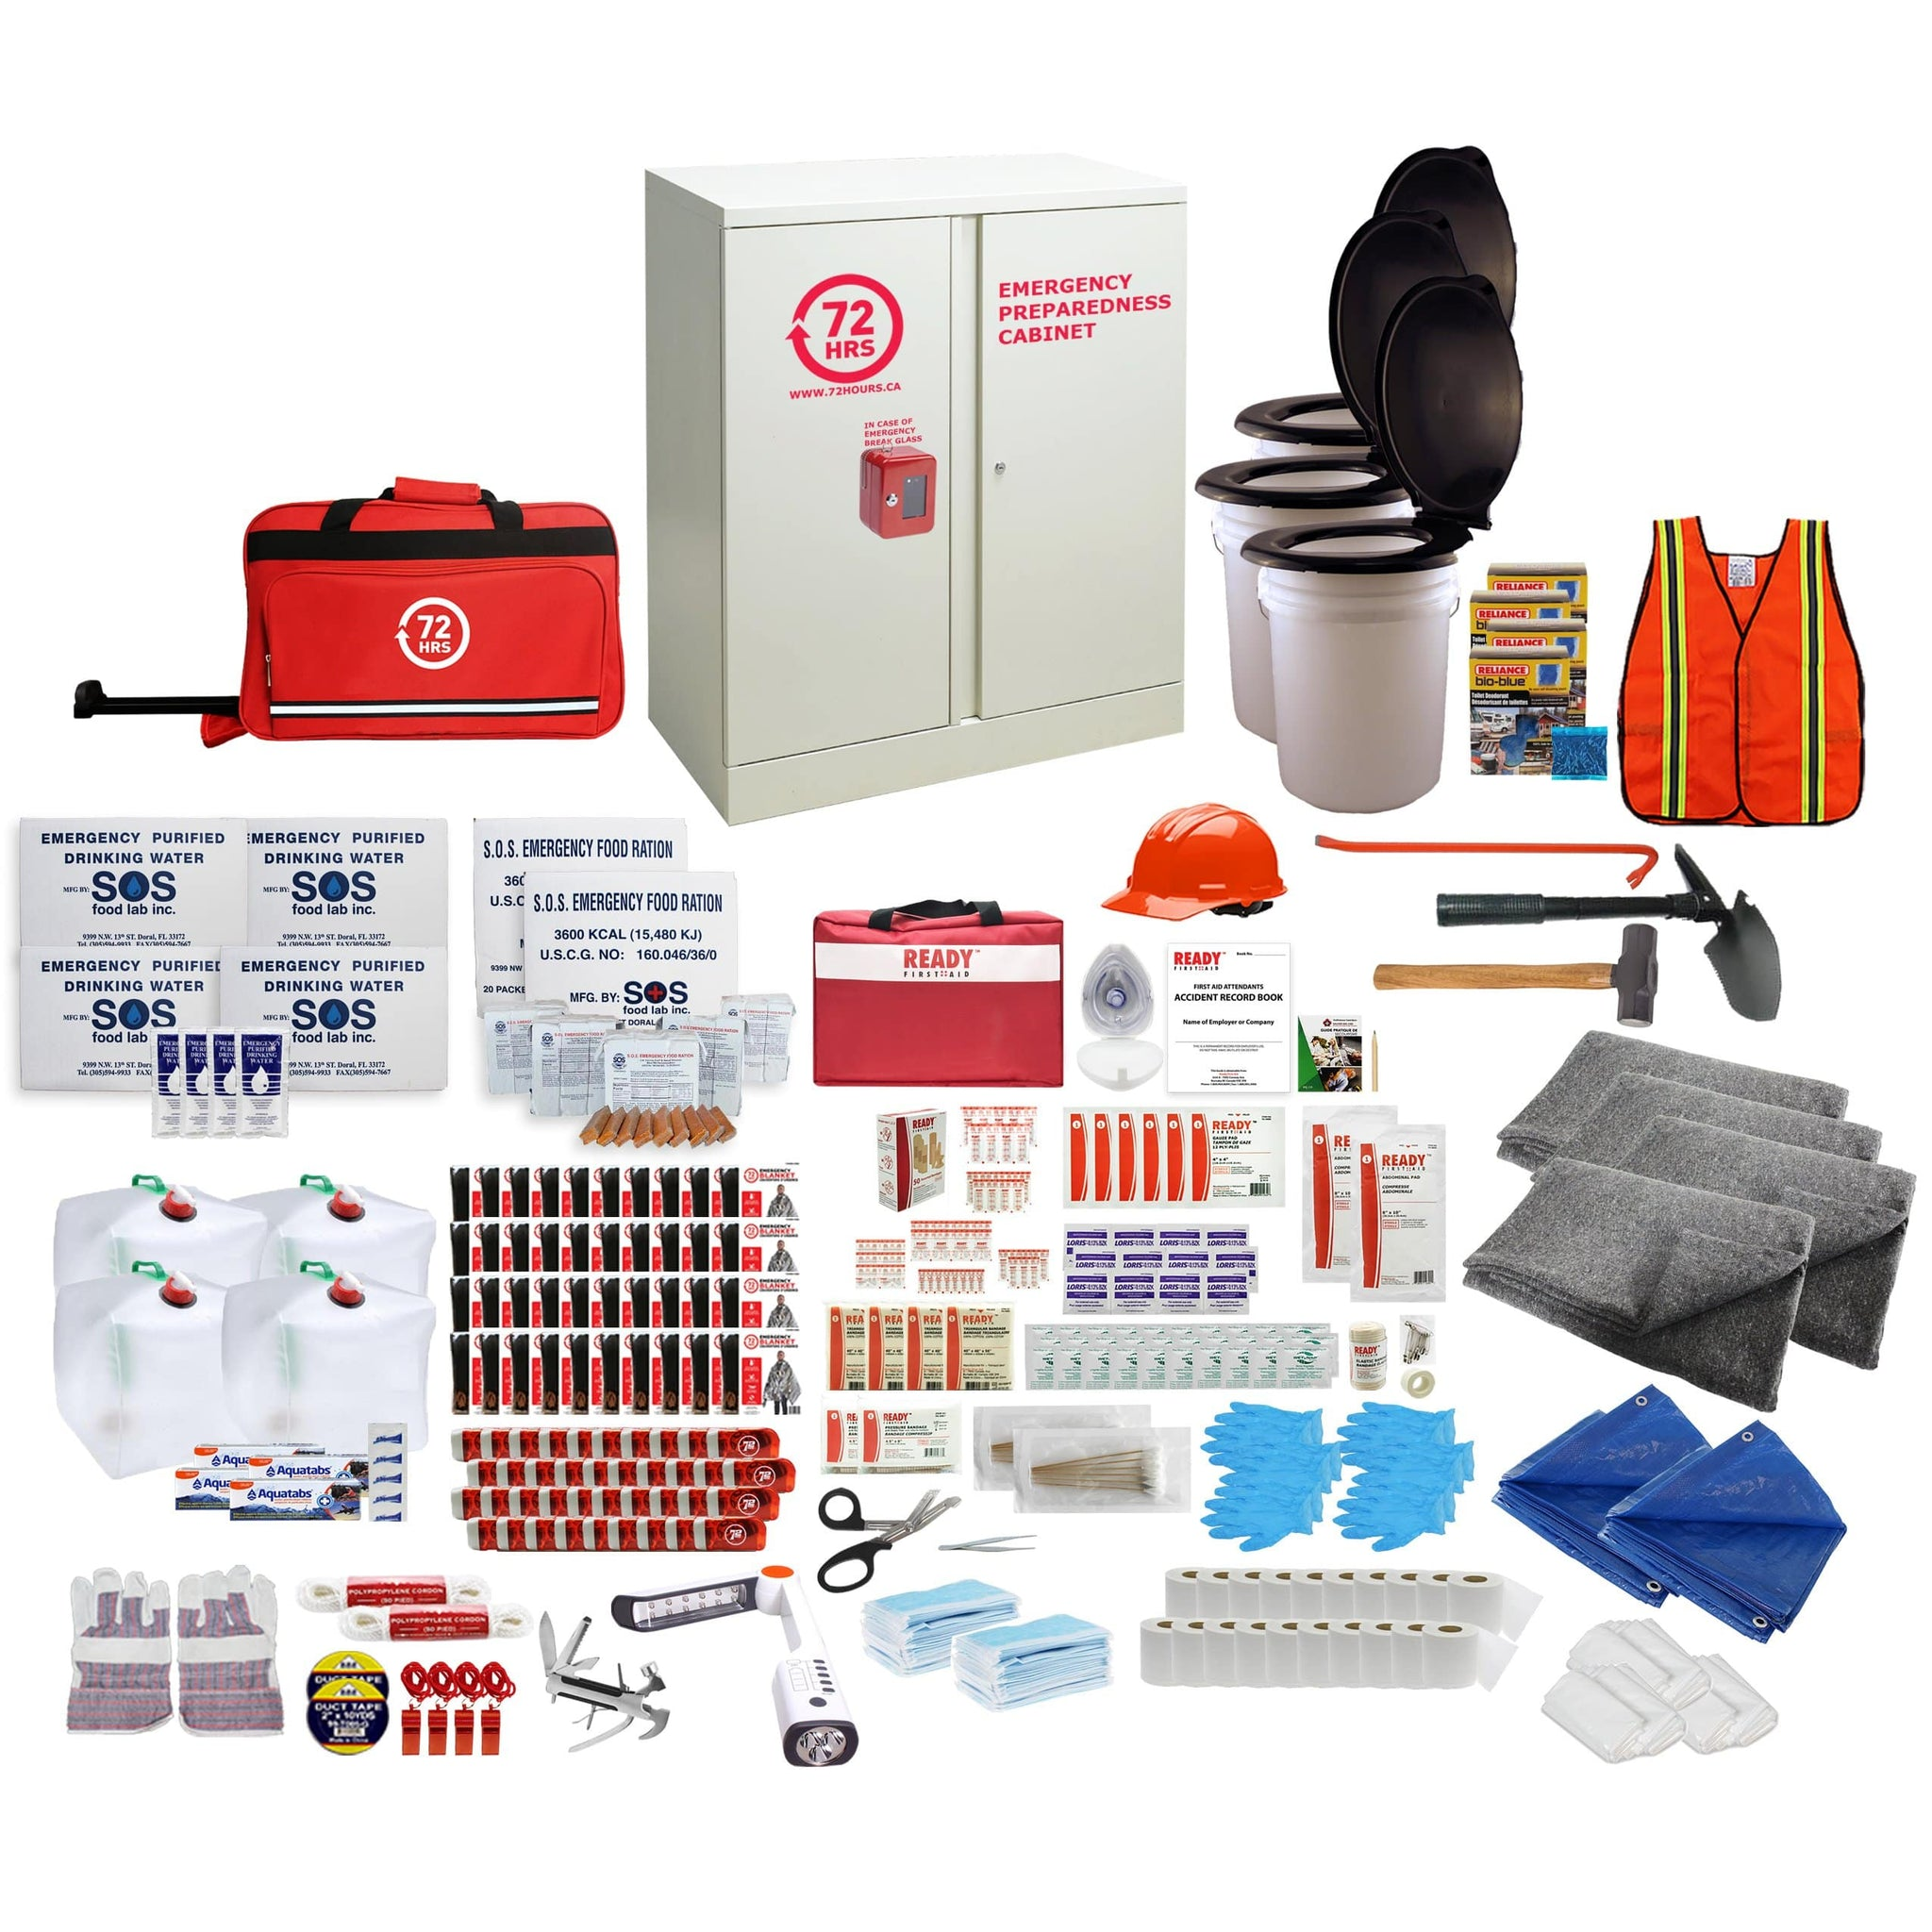 72HRS 40 people emergency cabinet kit with contents laid ouside of cabinet